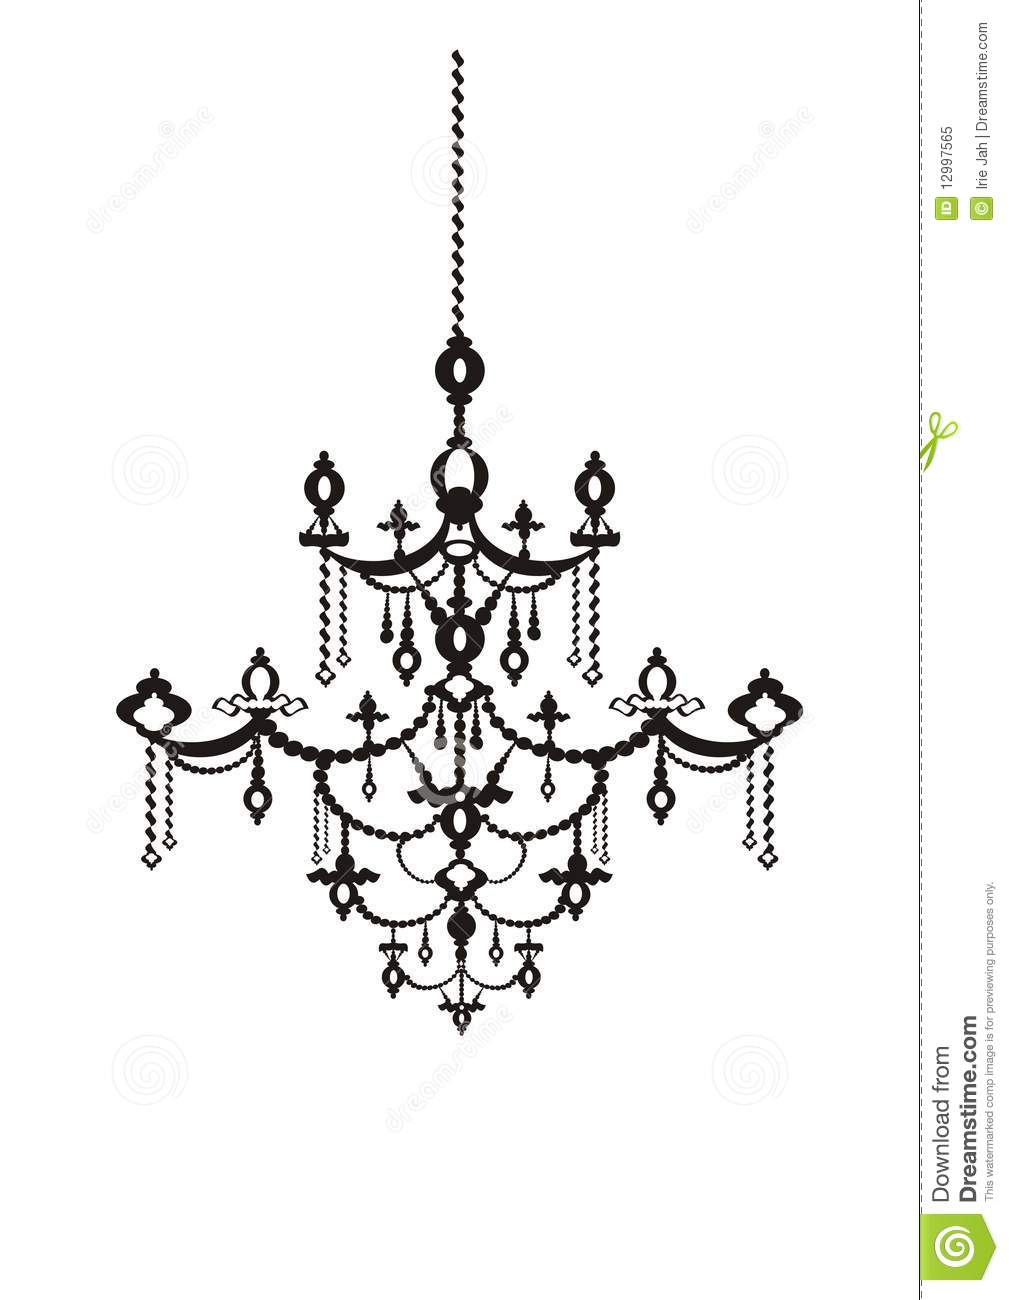 antique chandelier stock illustration illustration of. Black Bedroom Furniture Sets. Home Design Ideas